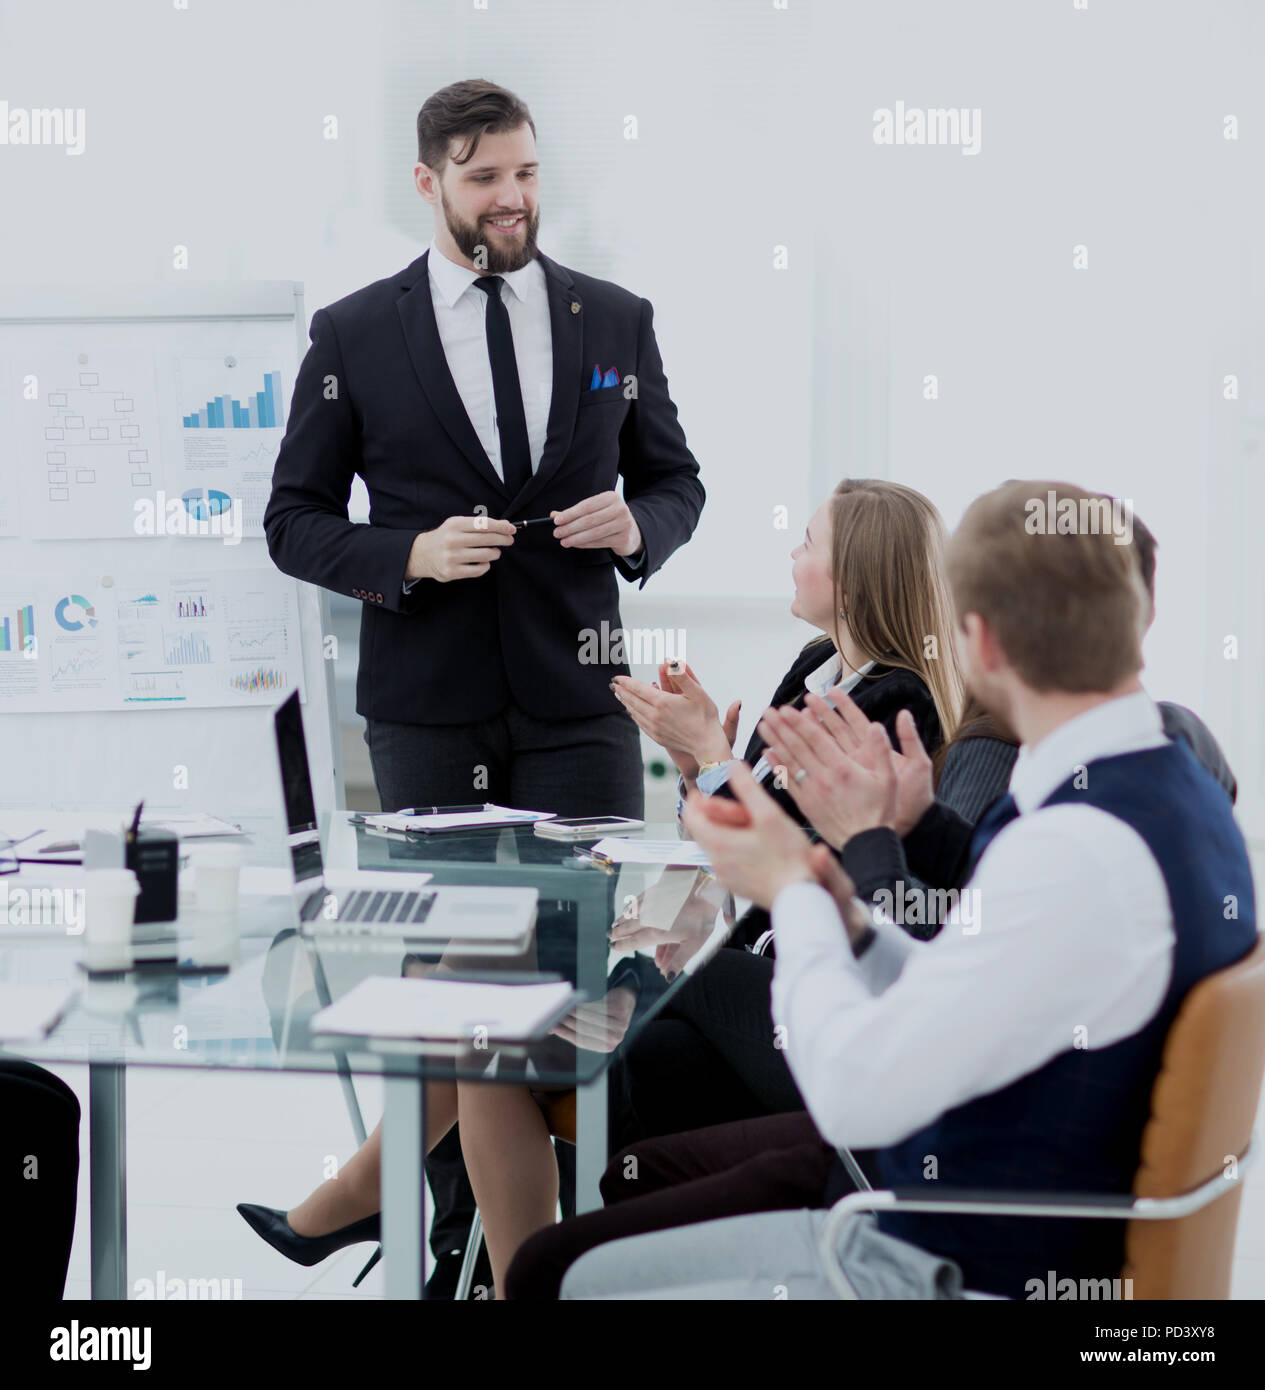 colleagues applaud the project Manager after the working meeting - Stock Image